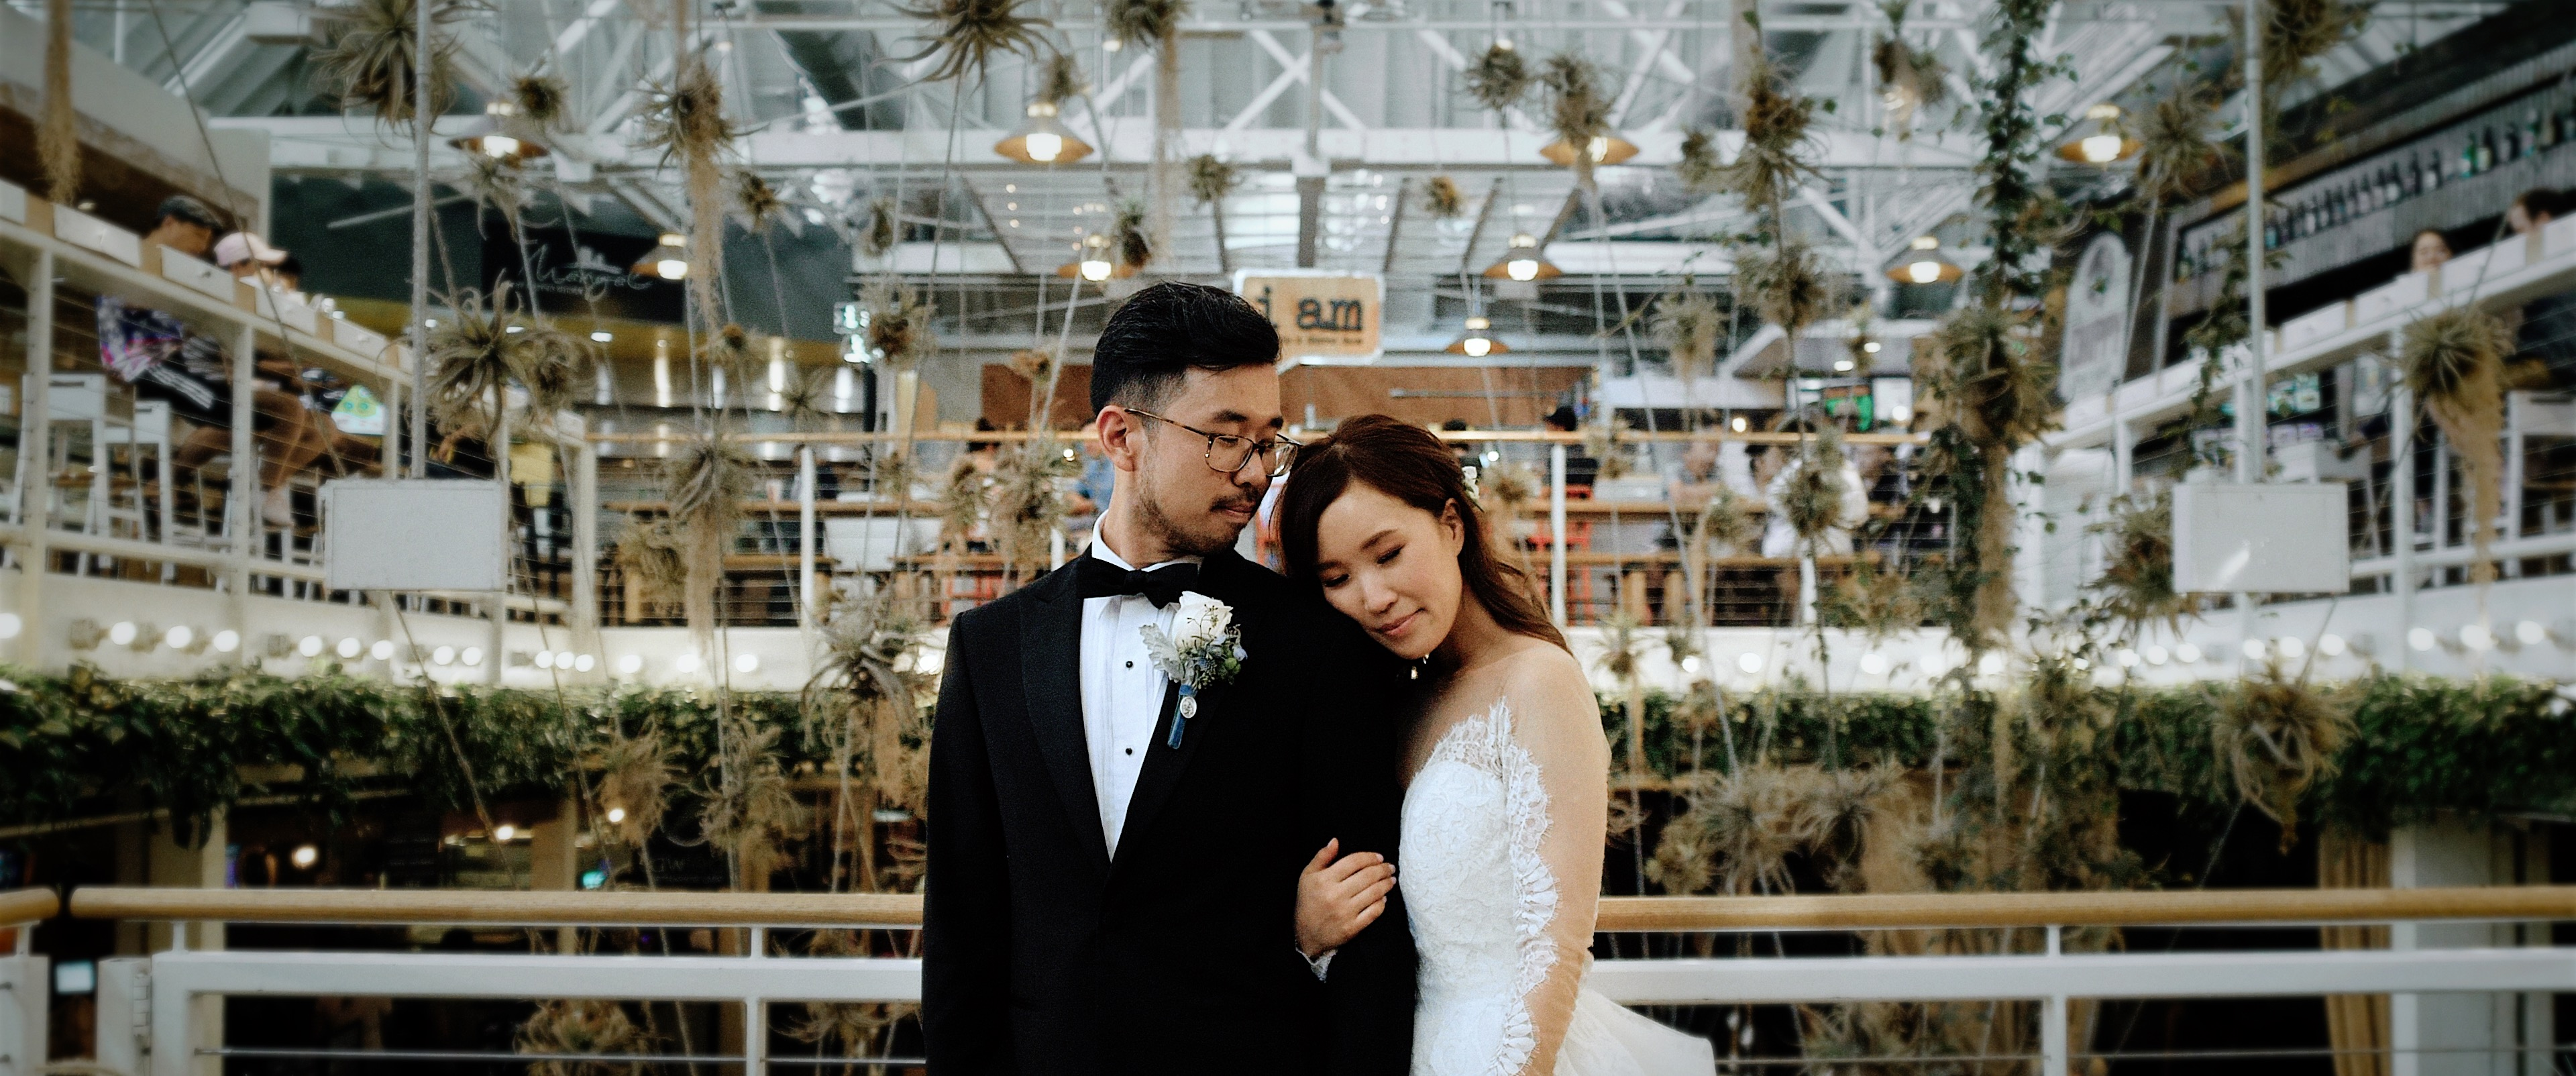 Jeane + Henry | Anaheim, California | Anaheim Packing District